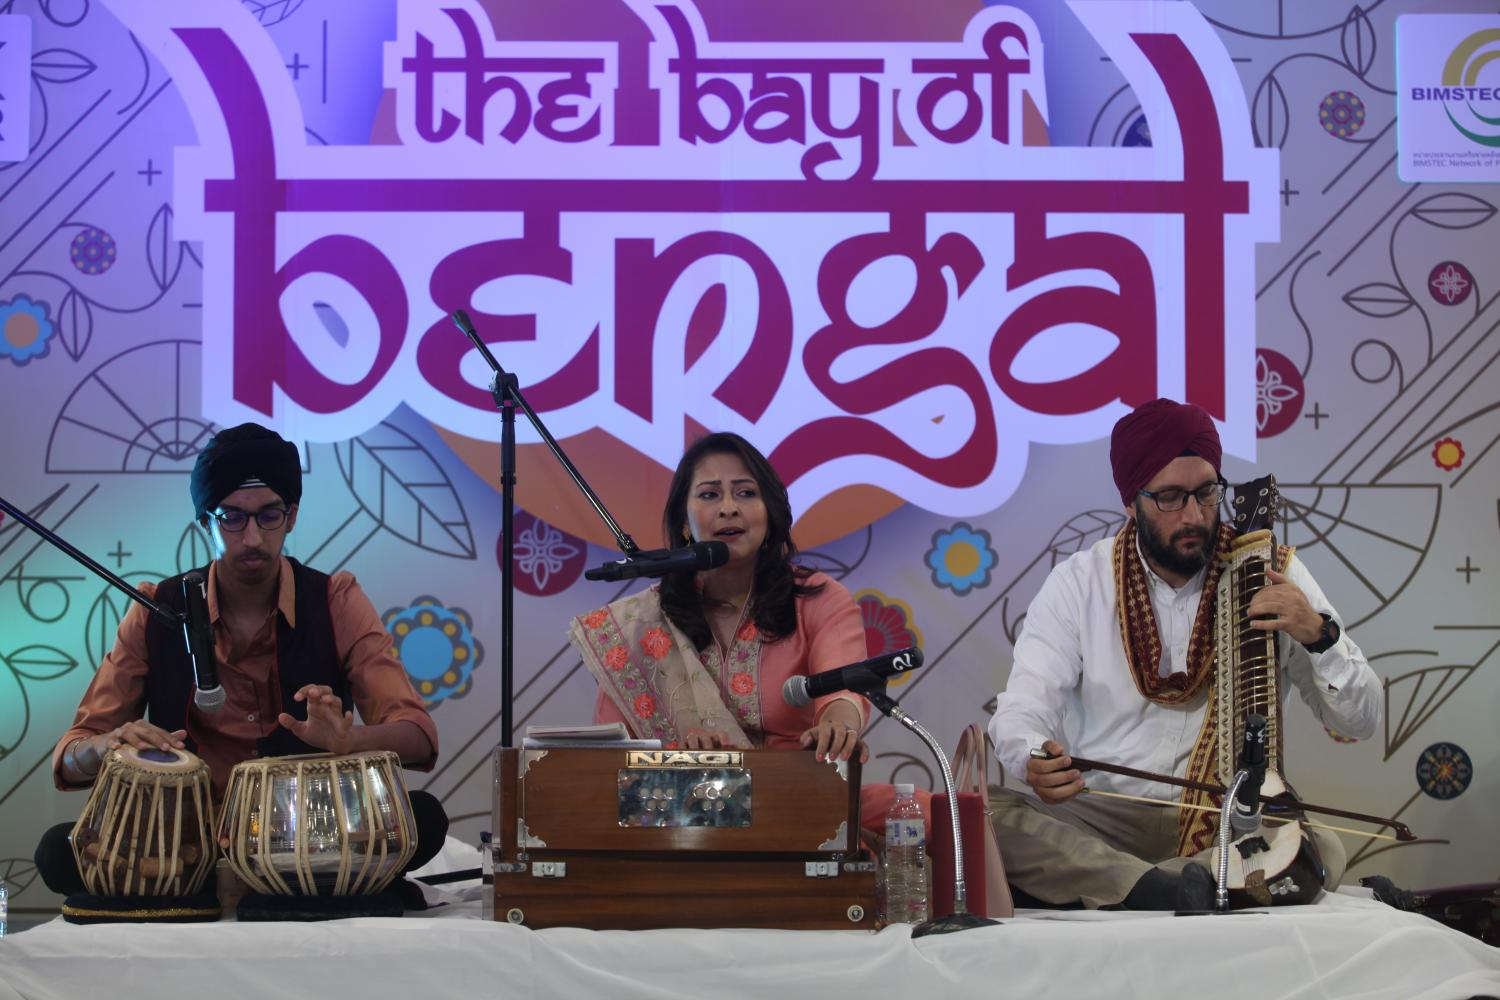 Traditional music is performed at an event to promote the relationship among members of the Bay of Bengal Initiative for Multi-Sectoral Technical and Economic Cooperation at the MBK Centre last week.Nutthawat Wicheanbut